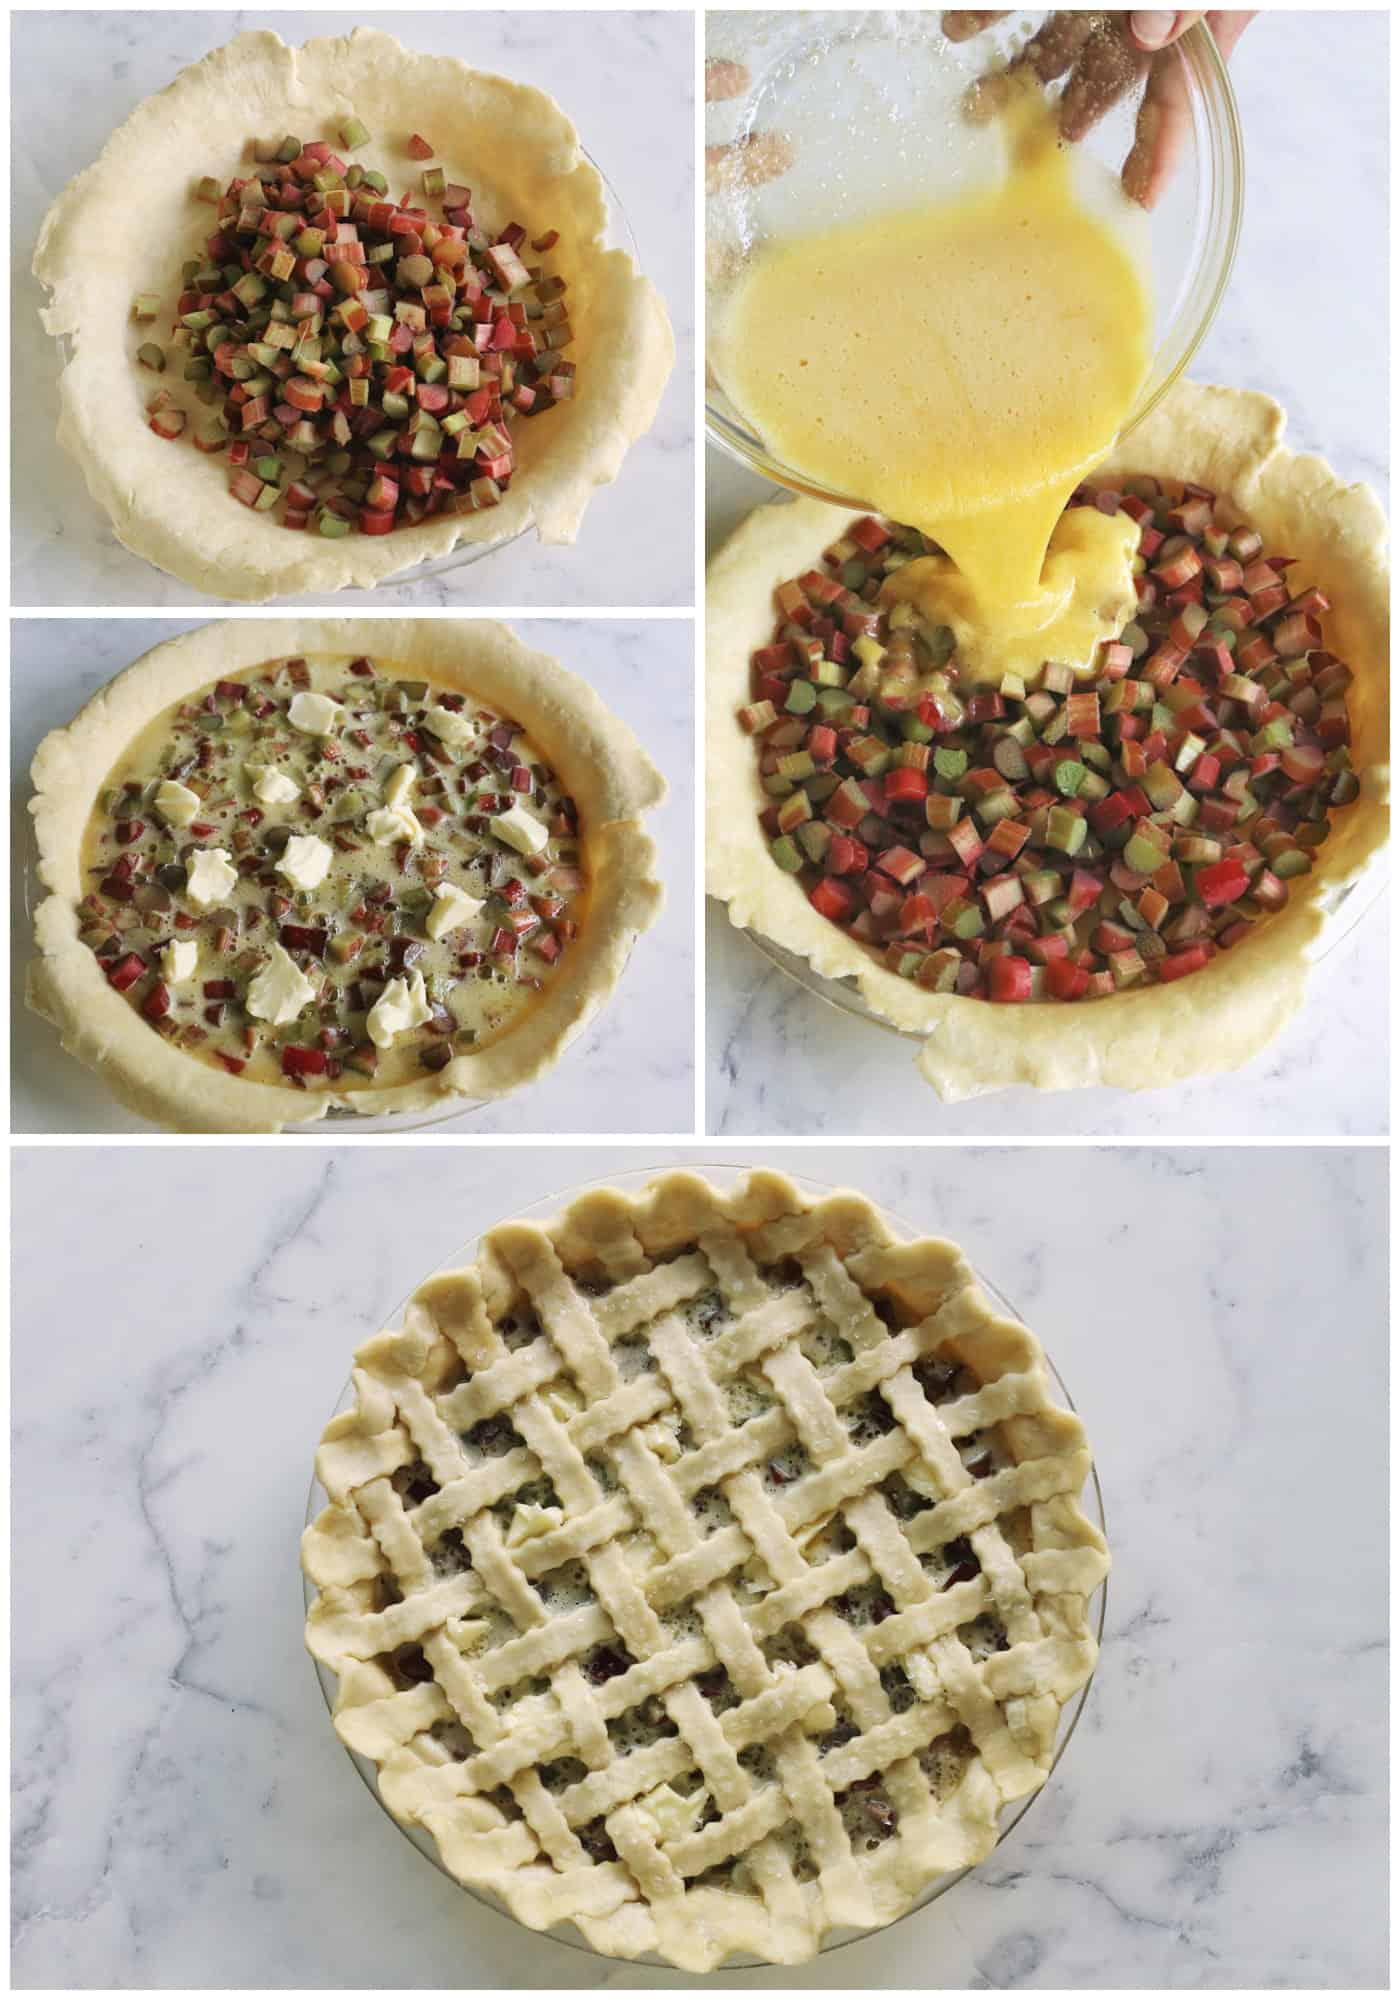 collage of photos showing how to make rhubarb pie